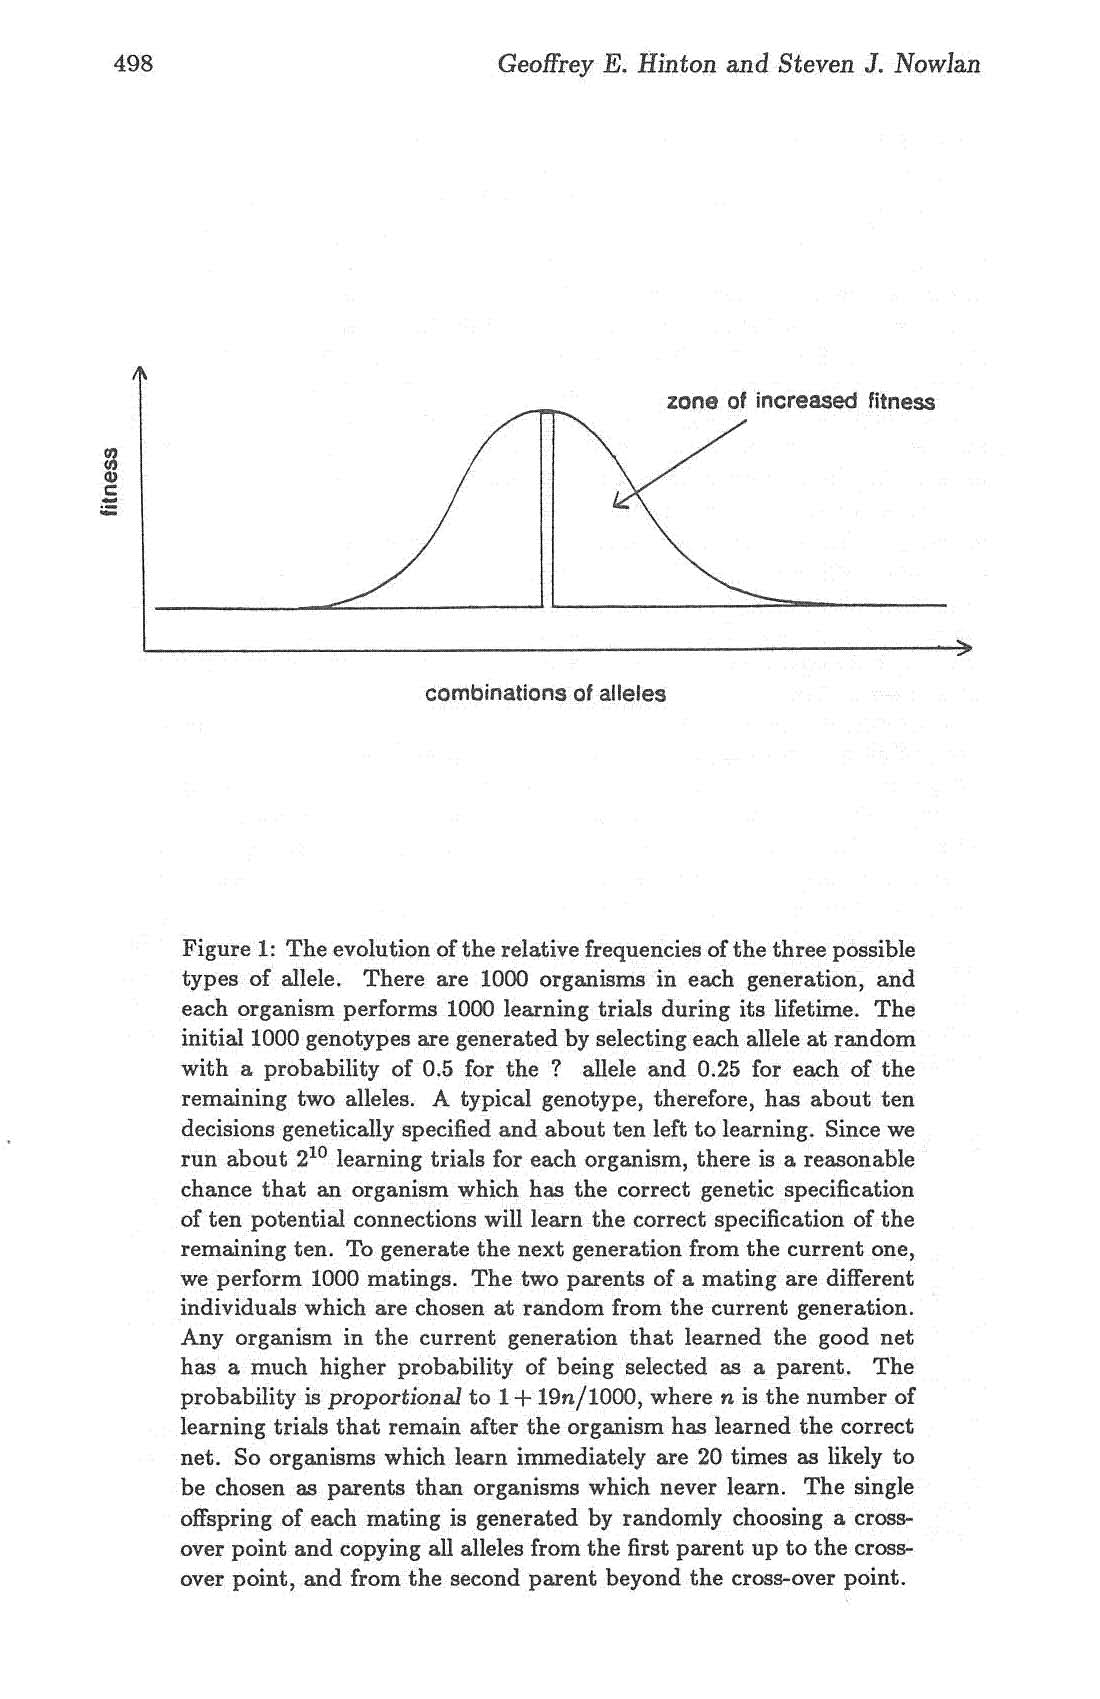 498 Geoffrey E. Hinton and Steven J. Nowlan zone of increased fitness combinations of alleles Figure 1: The evolution of the relative frequencies of the three possible types of allele.